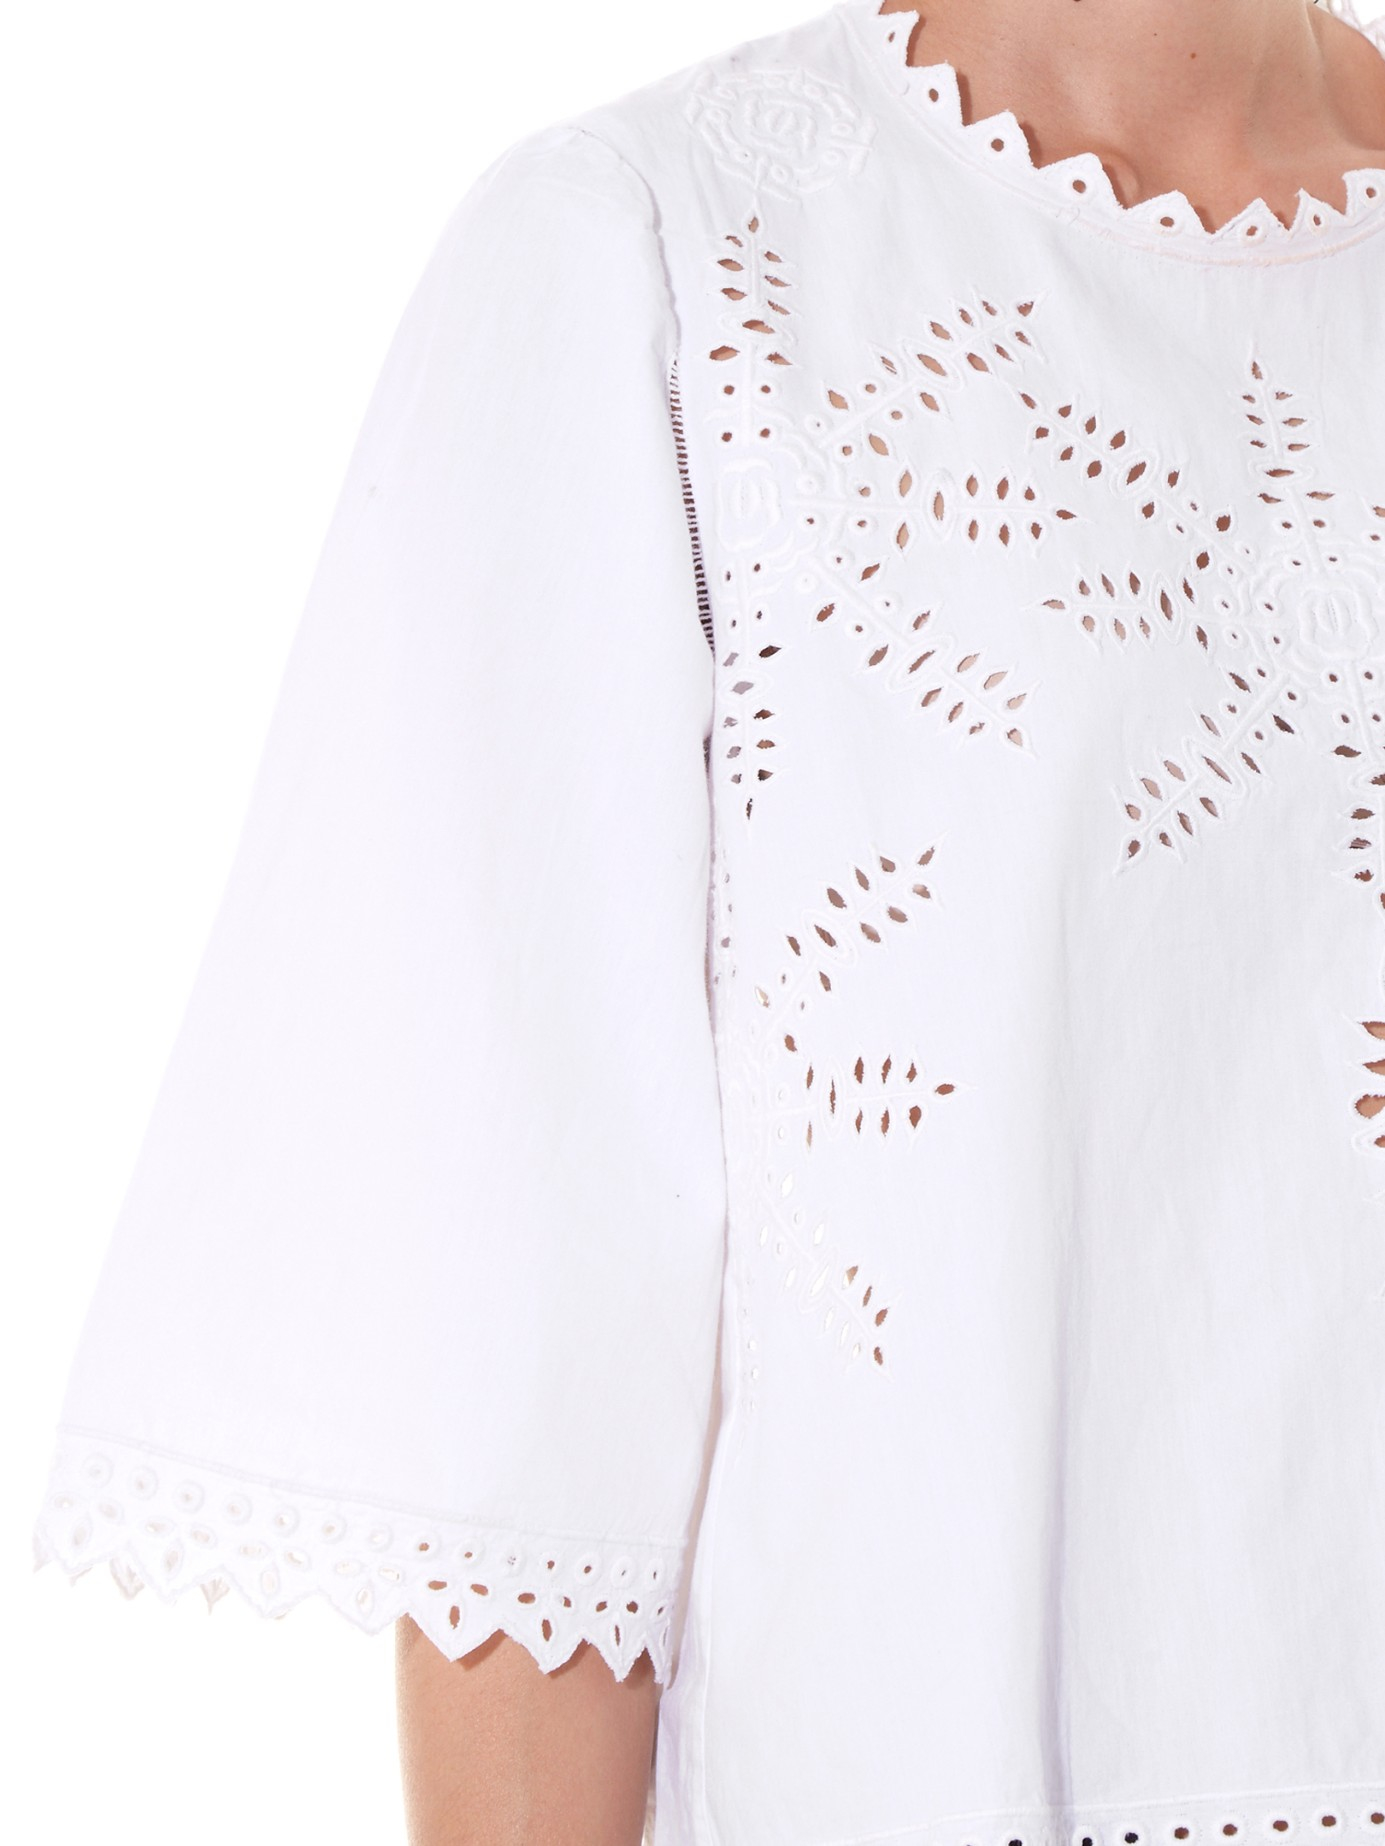 ac17372c20c93 Lyst - Étoile Isabel Marant Dill Embroidered Cotton-poplin Top in White